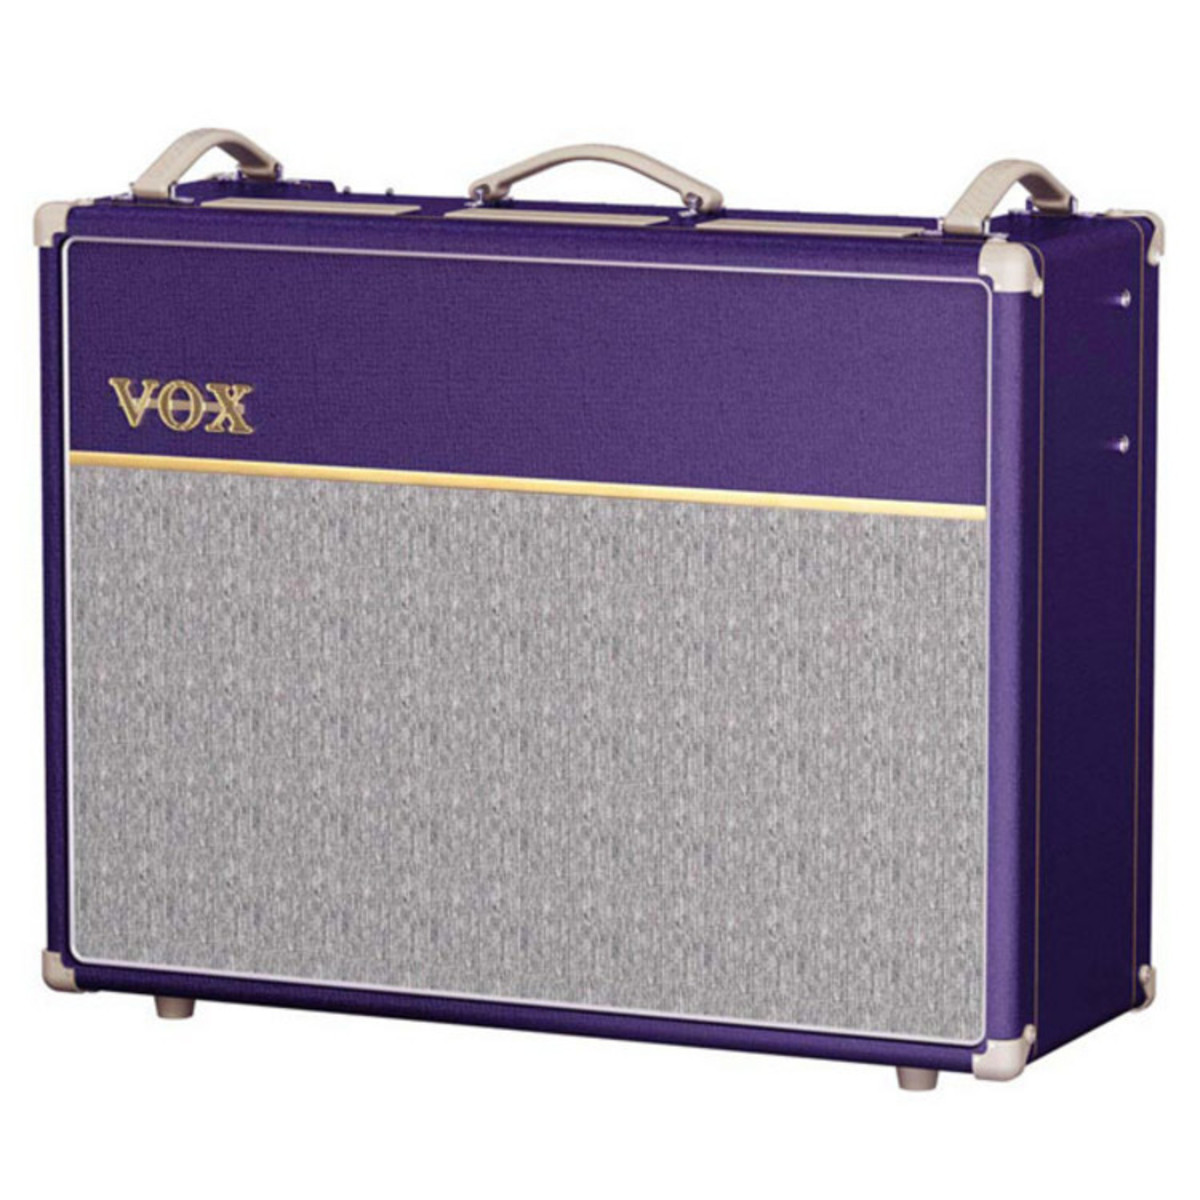 vox ac30c2 custom guitar amp limited edition purple at. Black Bedroom Furniture Sets. Home Design Ideas